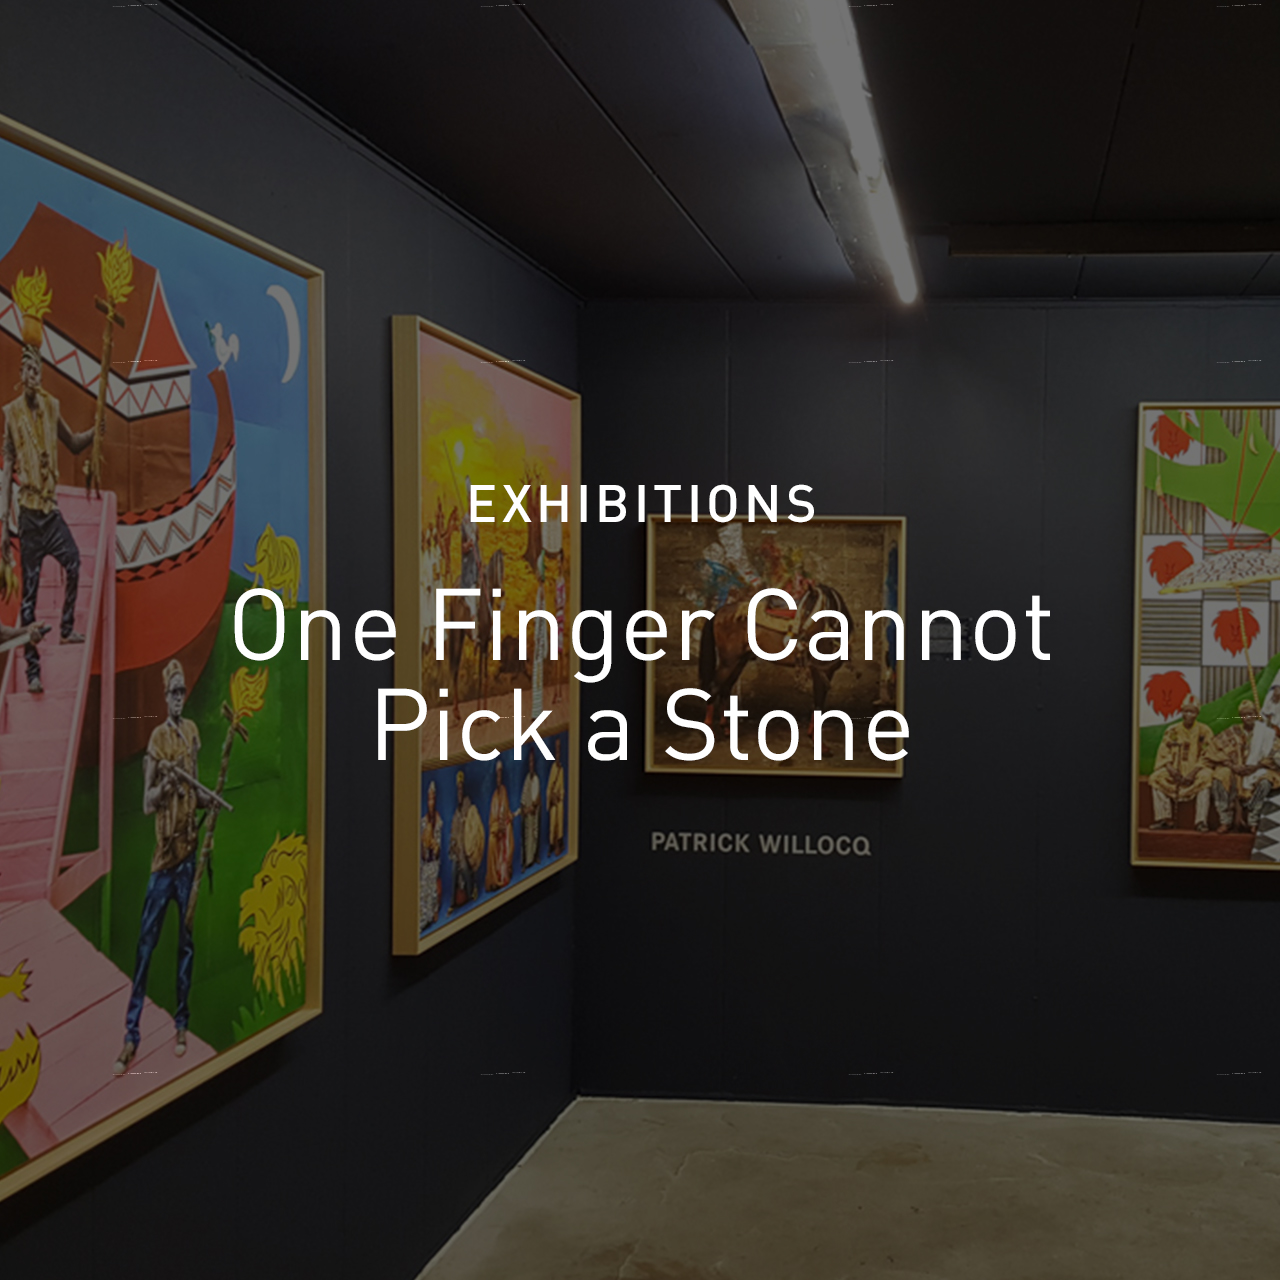 new_c_One finger cannot pick a stone - Exhibitions